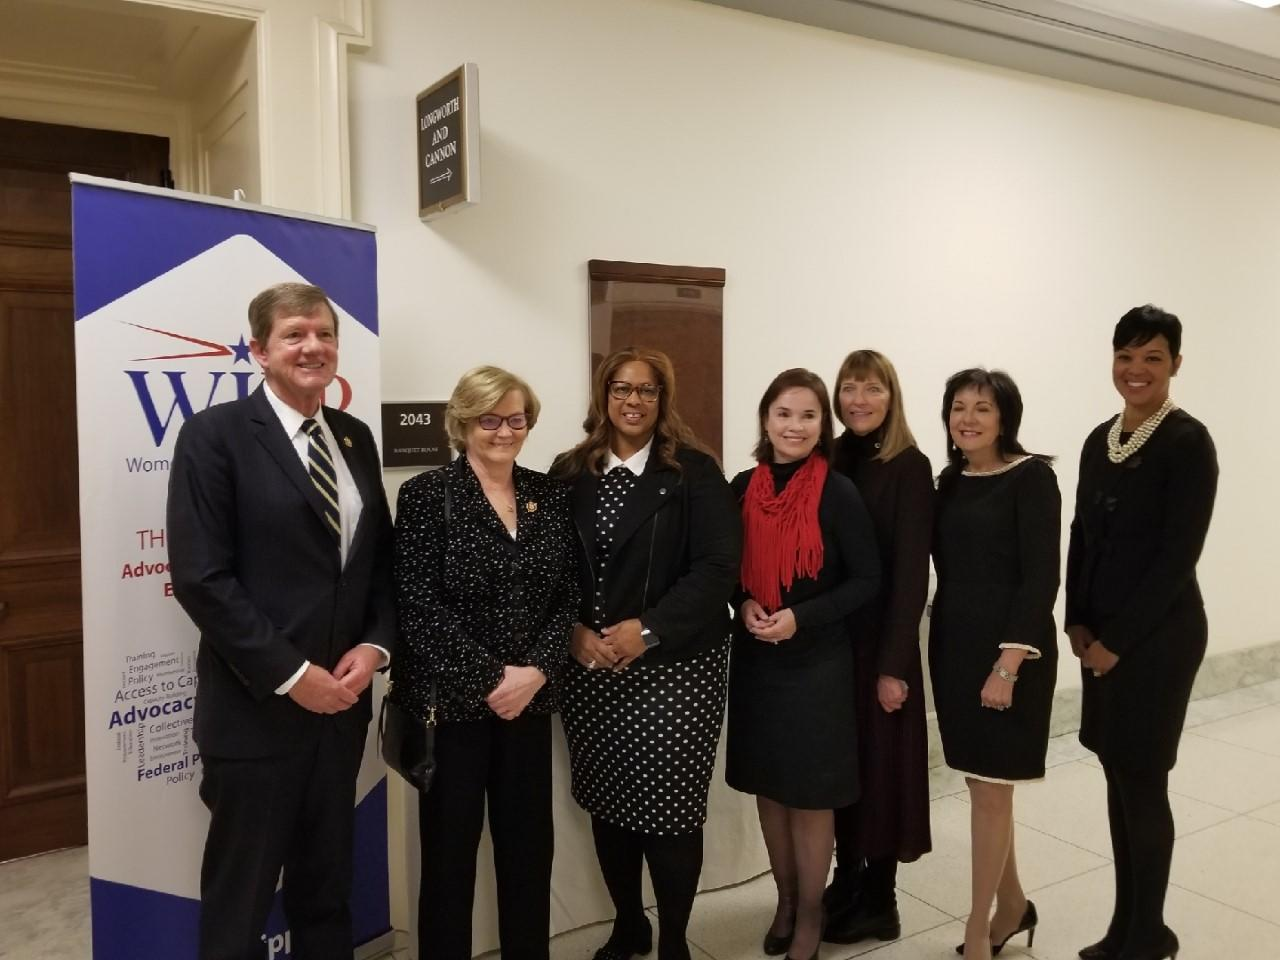 Circuit Media CEO Participates in Women's Roundtable